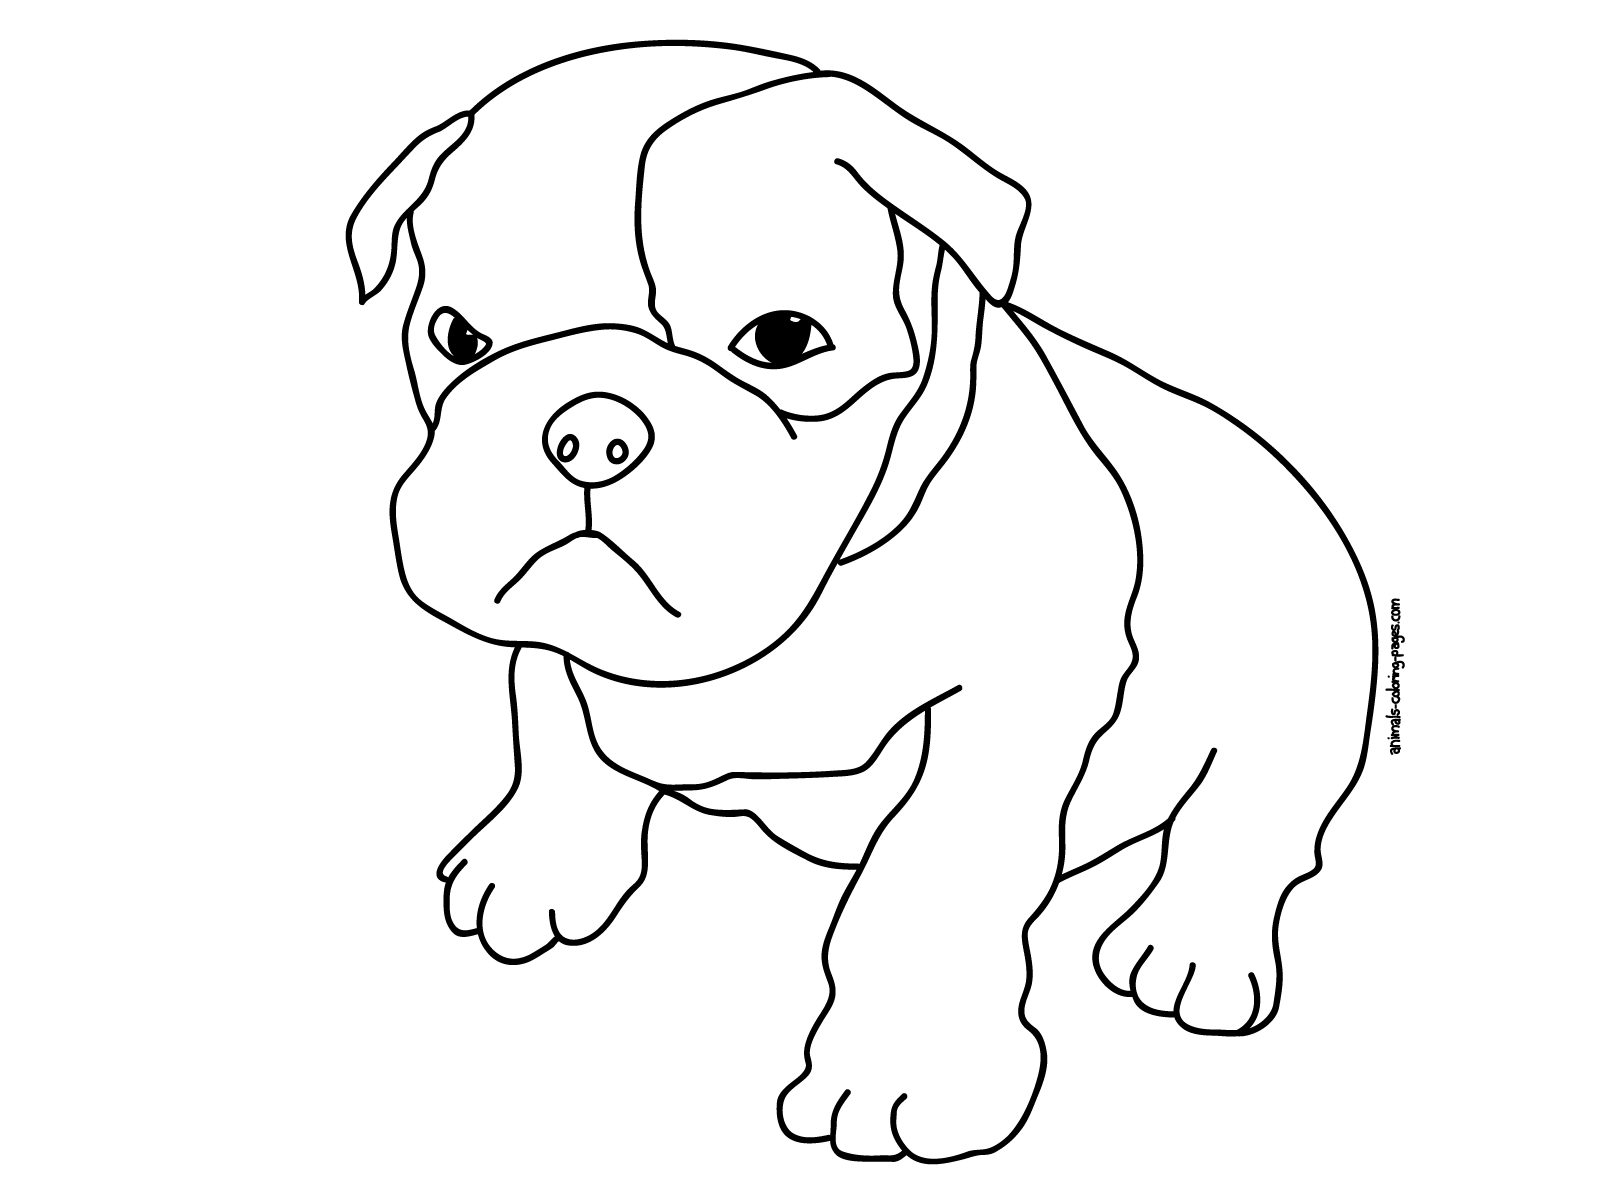 baby pitbull coloring pages american pitbull coloring pages kids - Pitbull Coloring Pages